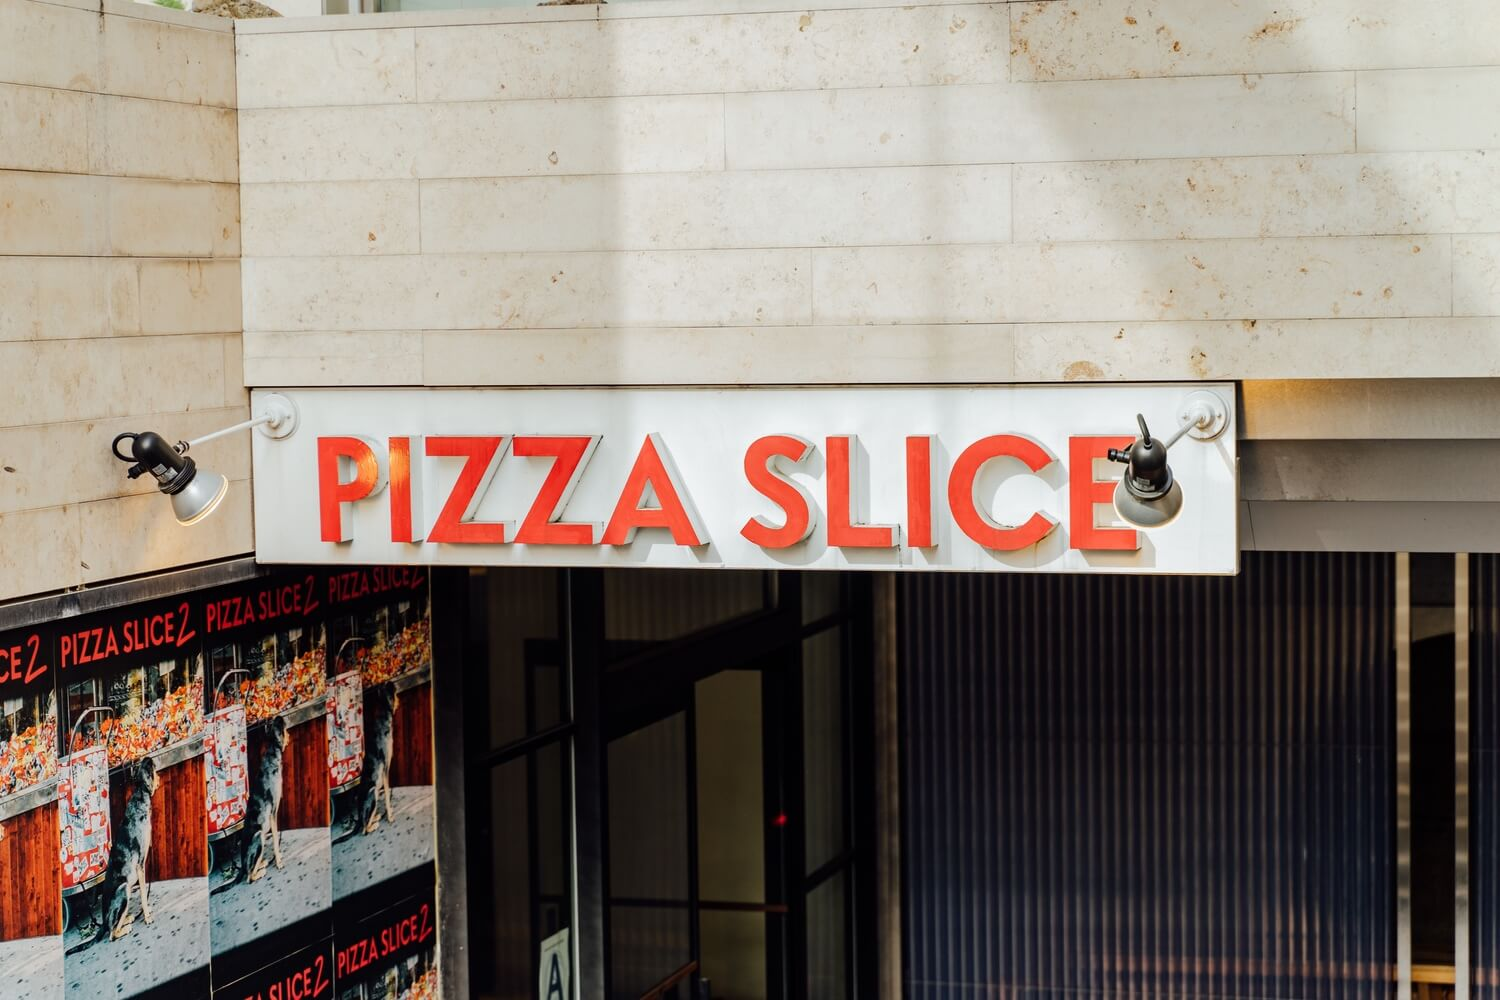 Pizza slice2 2